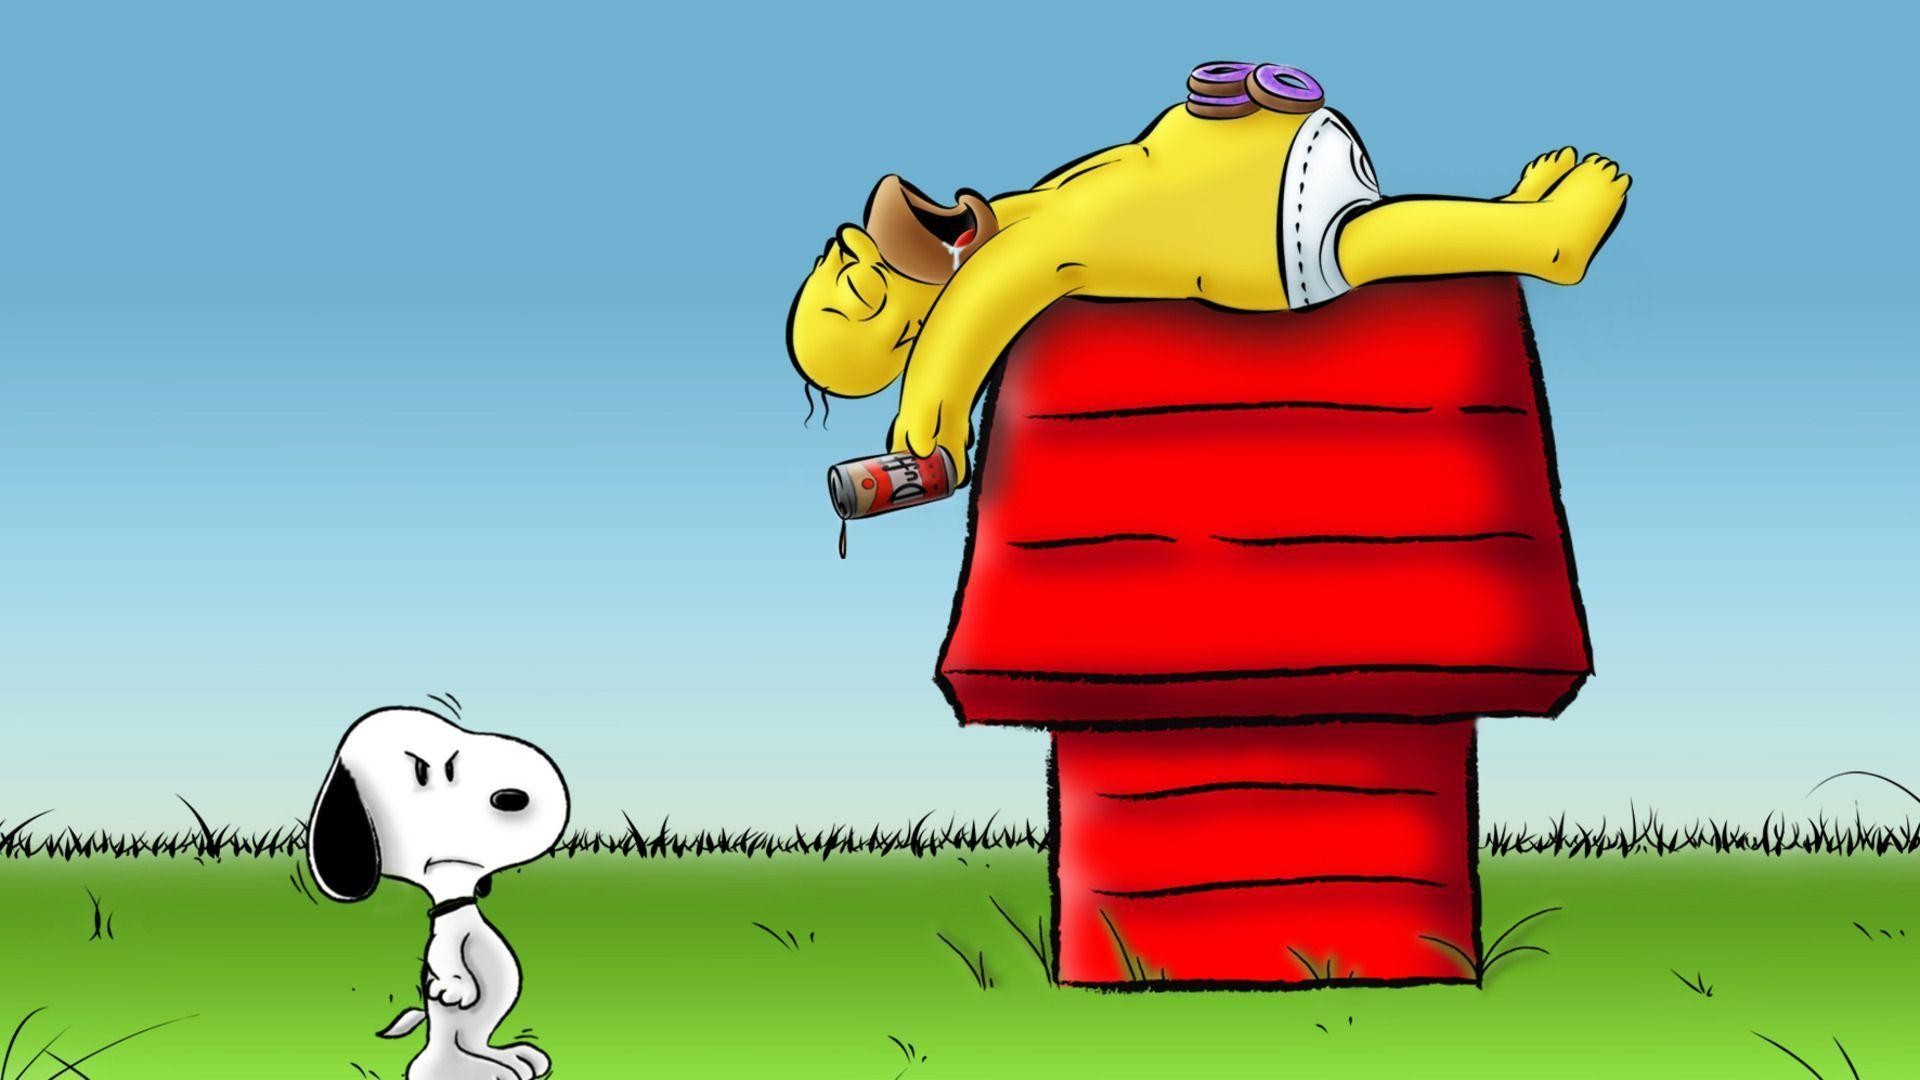 Wallpaper Homer Simpson - Snoopy And Homer Simpson - HD Wallpaper